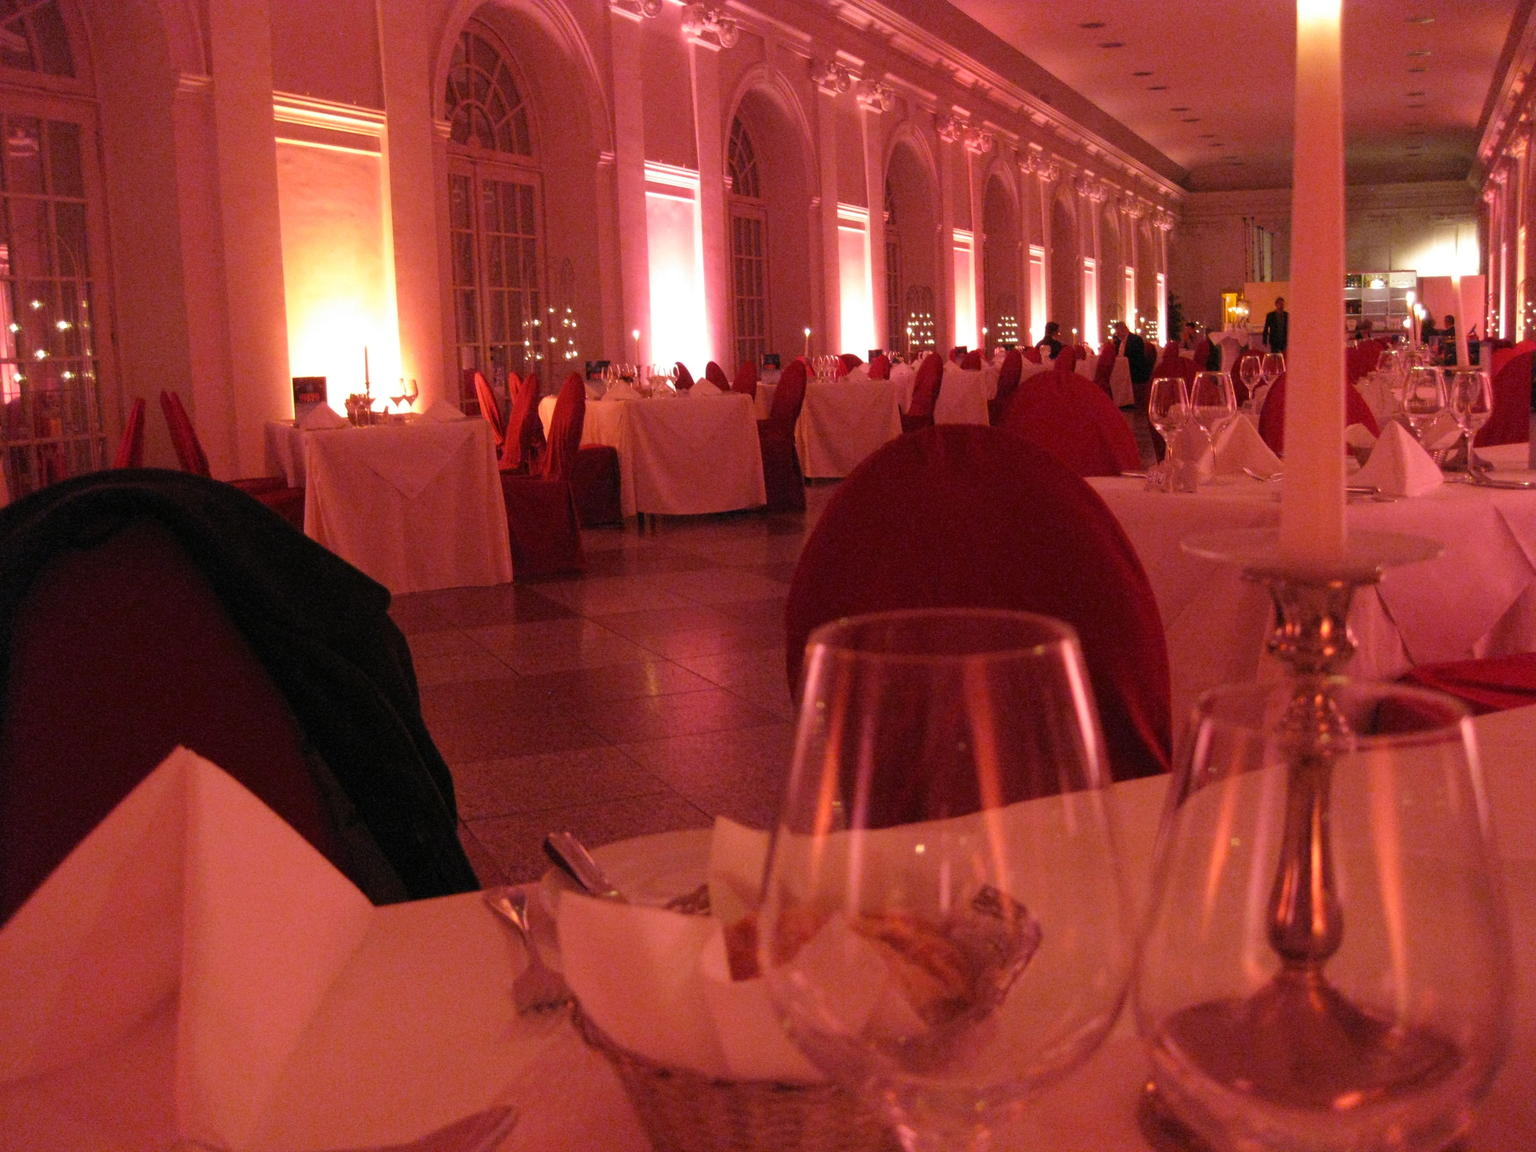 MORE PHOTOS, An Evening at Charlottenburg Palace: Dinner and Concert Ticket